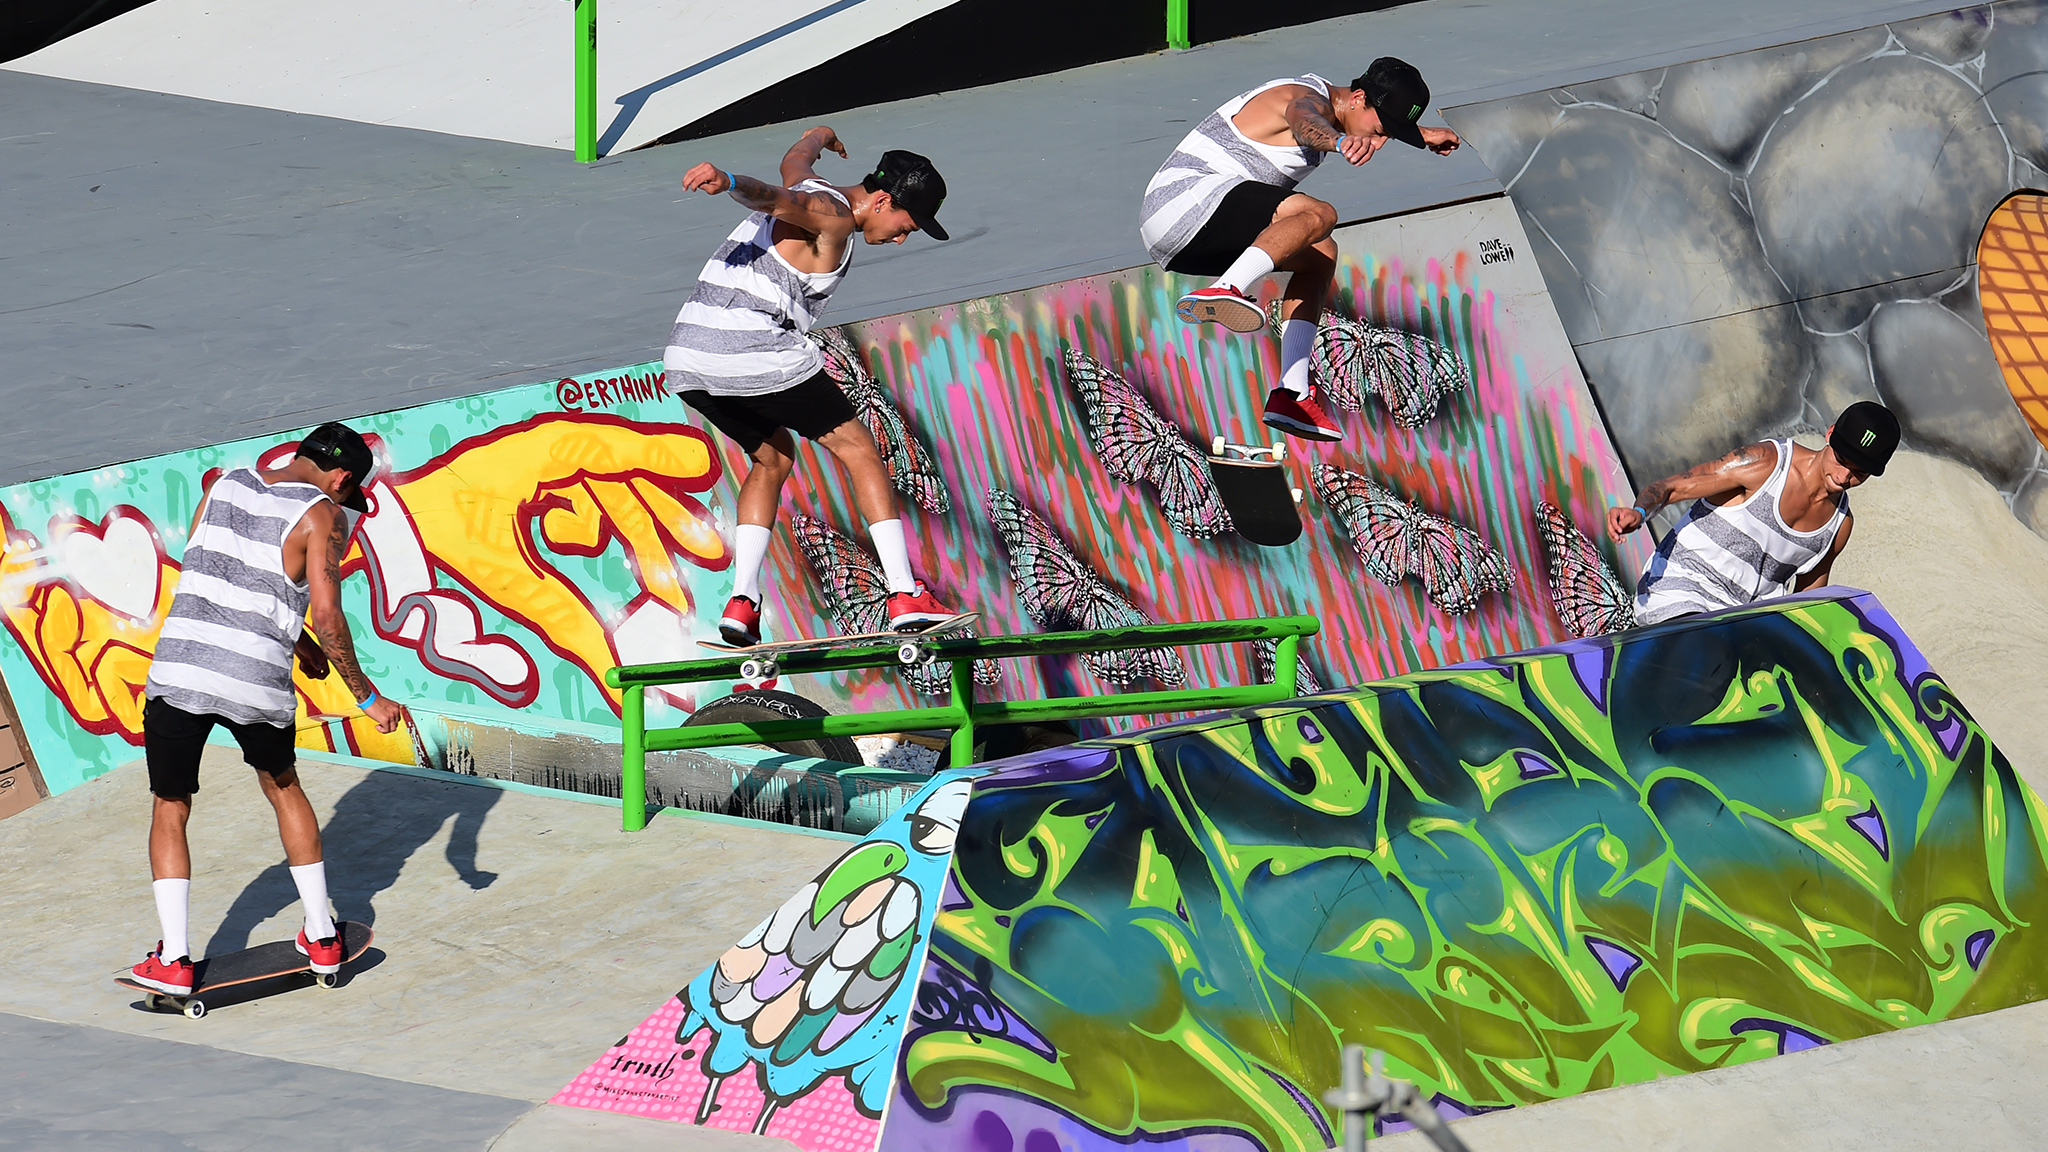 Skateboard Street -- Nyjah Huston